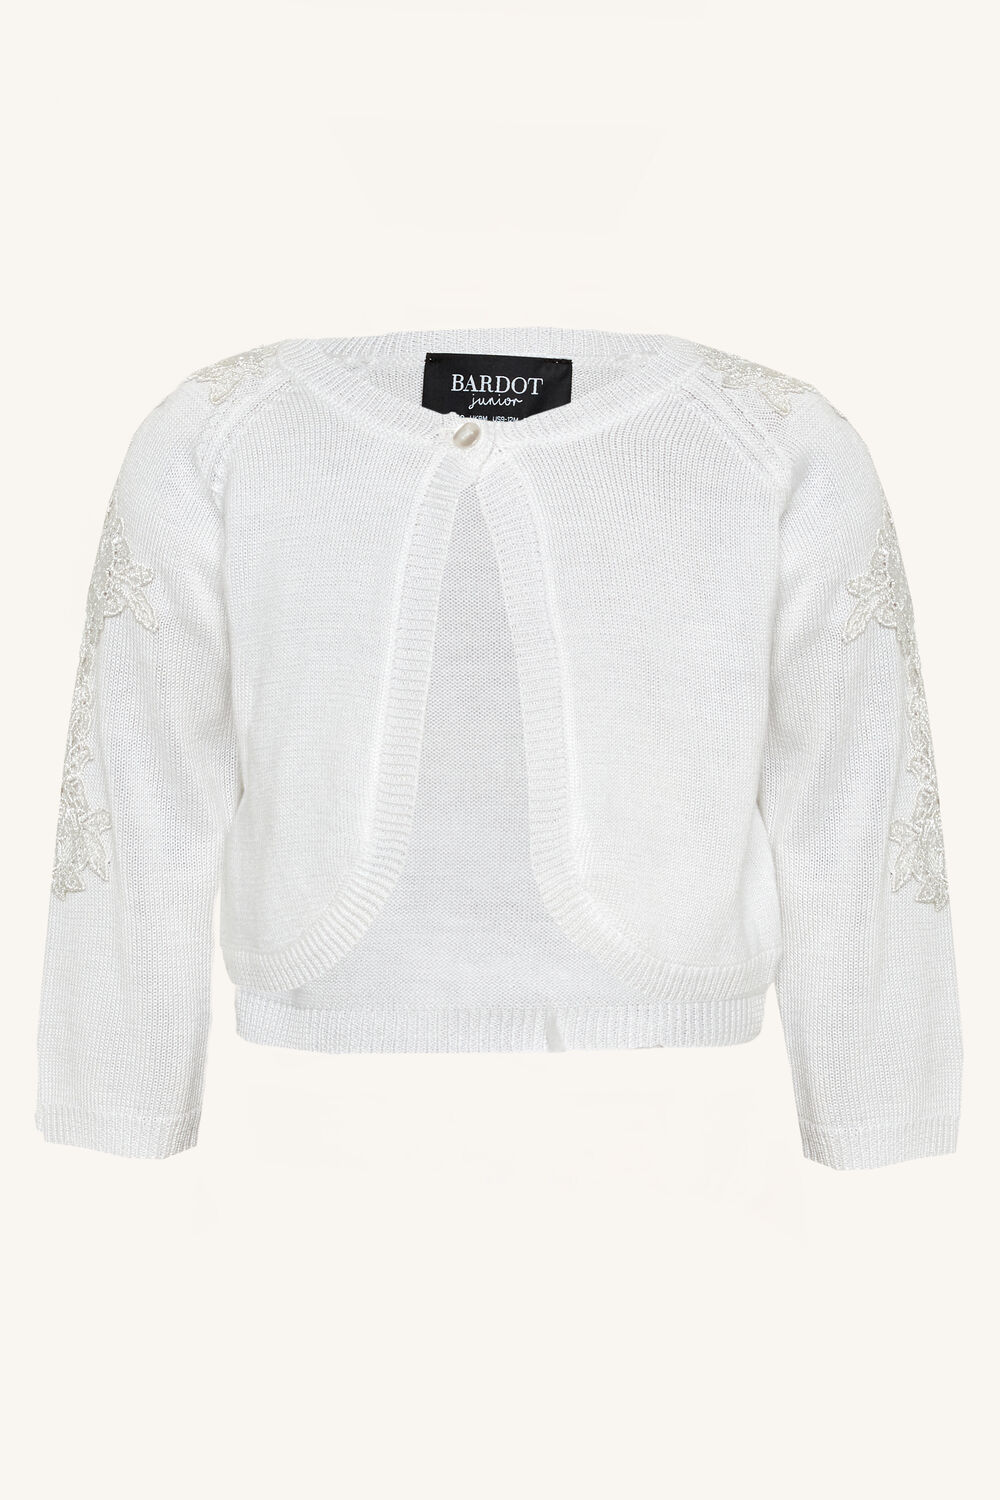 EMROIDERED CARDIGAN in colour BRIGHT WHITE